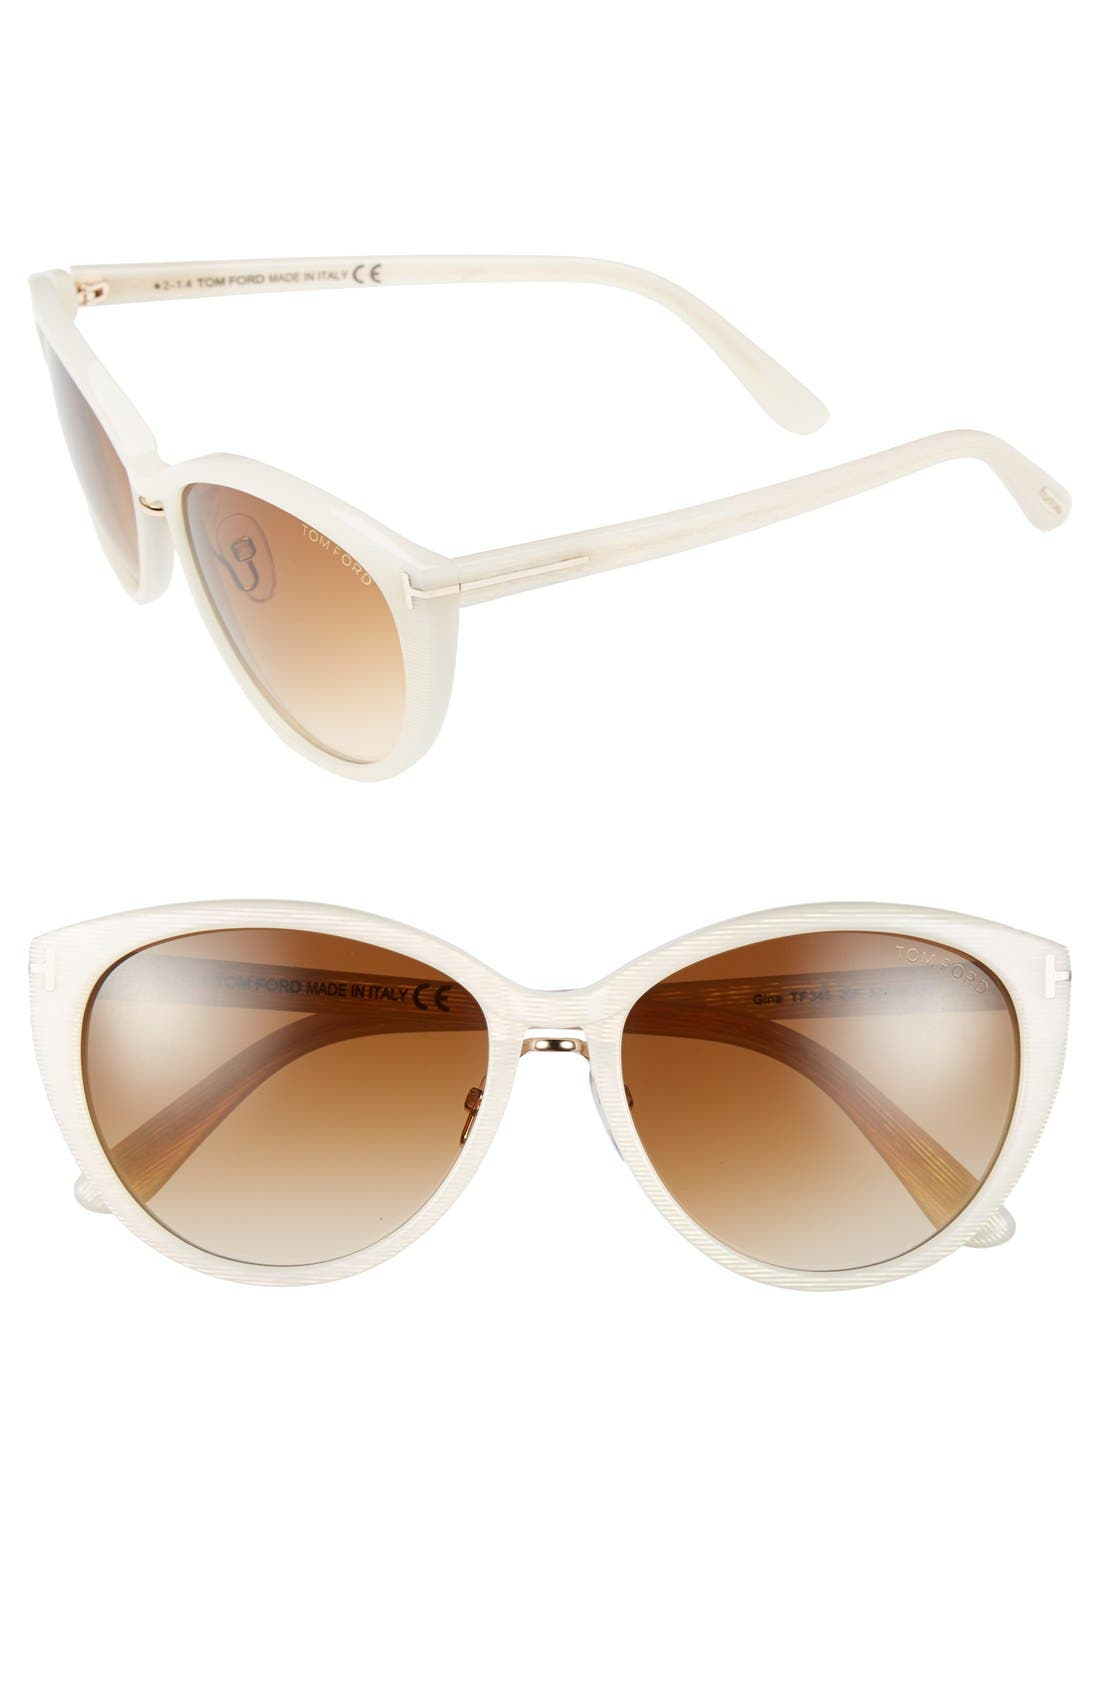 Alternate Image 1 Selected - Tom Ford 'Gina' 57mm Cat Eye Sunglasses